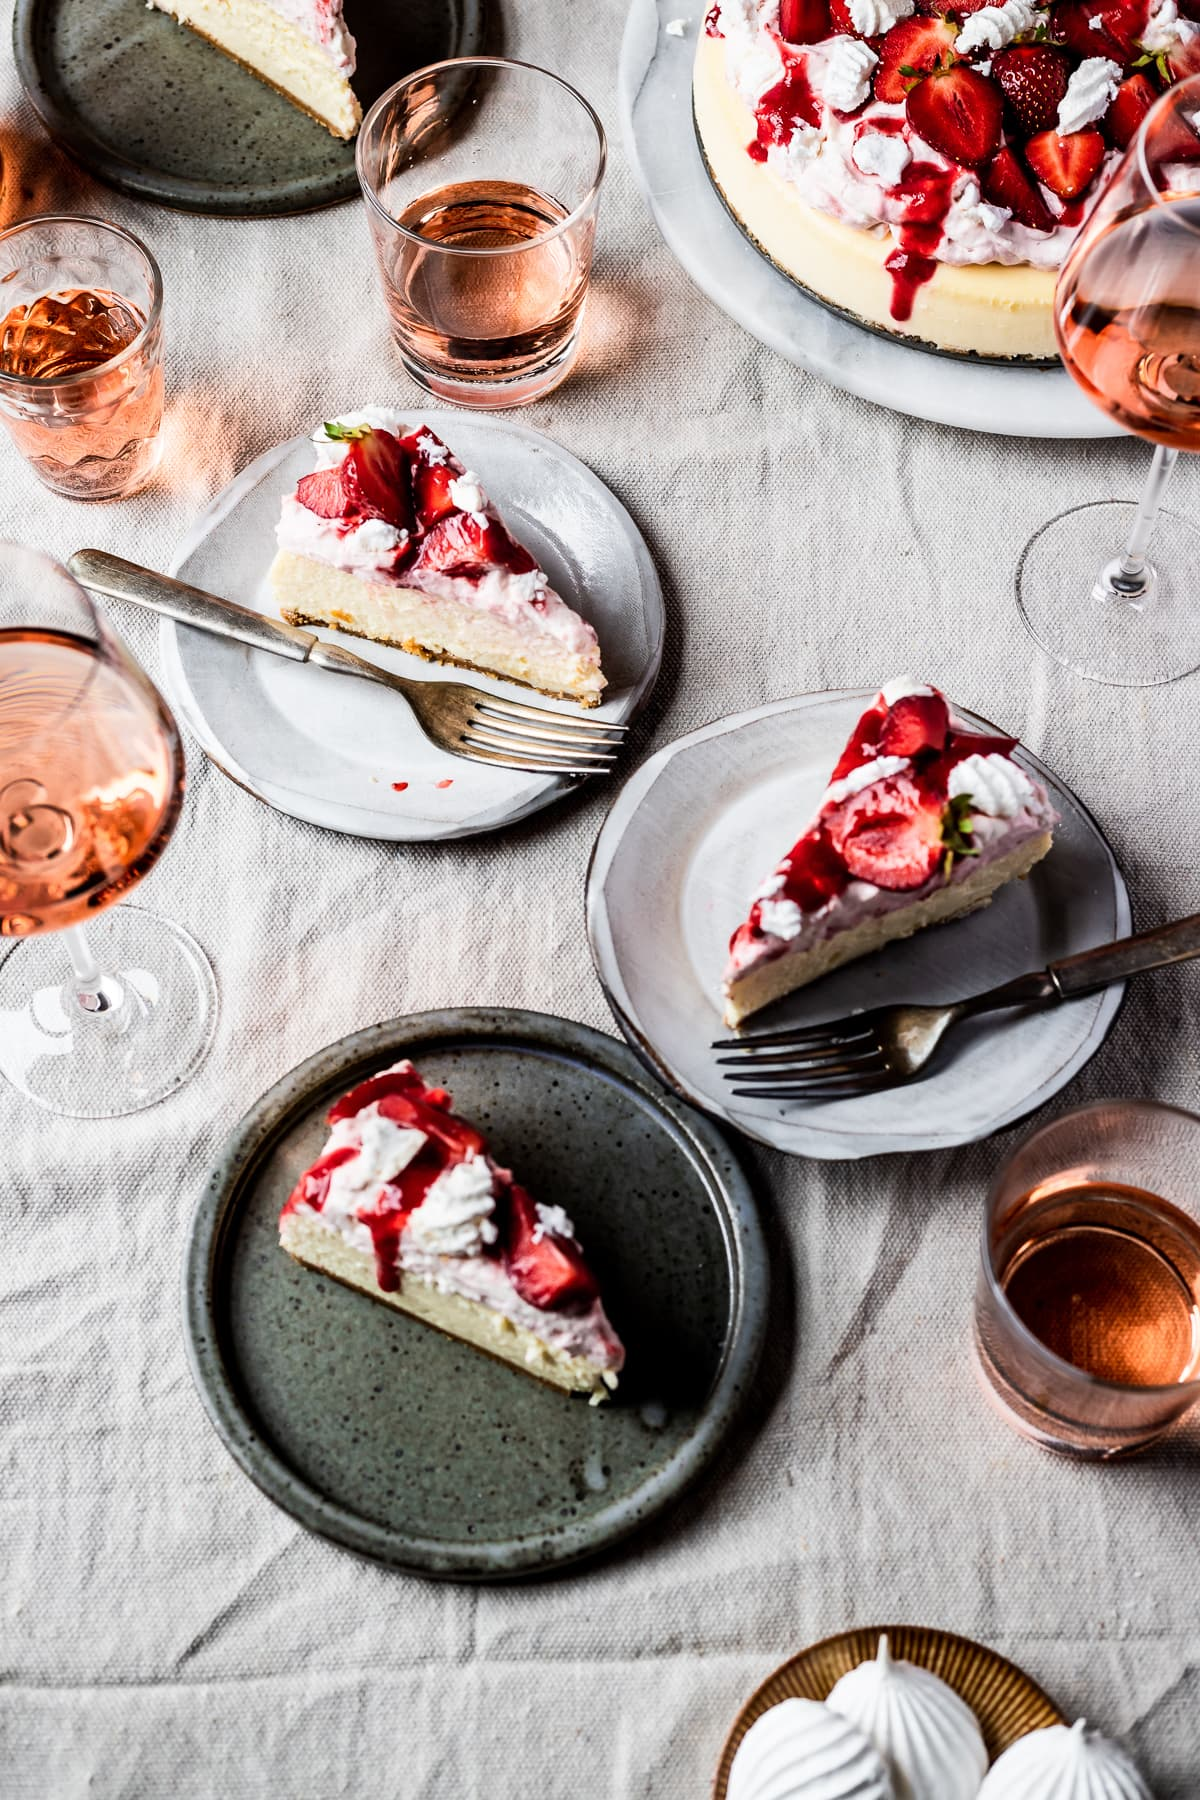 A picnic scene with slices of cheesecake on plates on a linen cloth with glasses of rosé wine nearby.